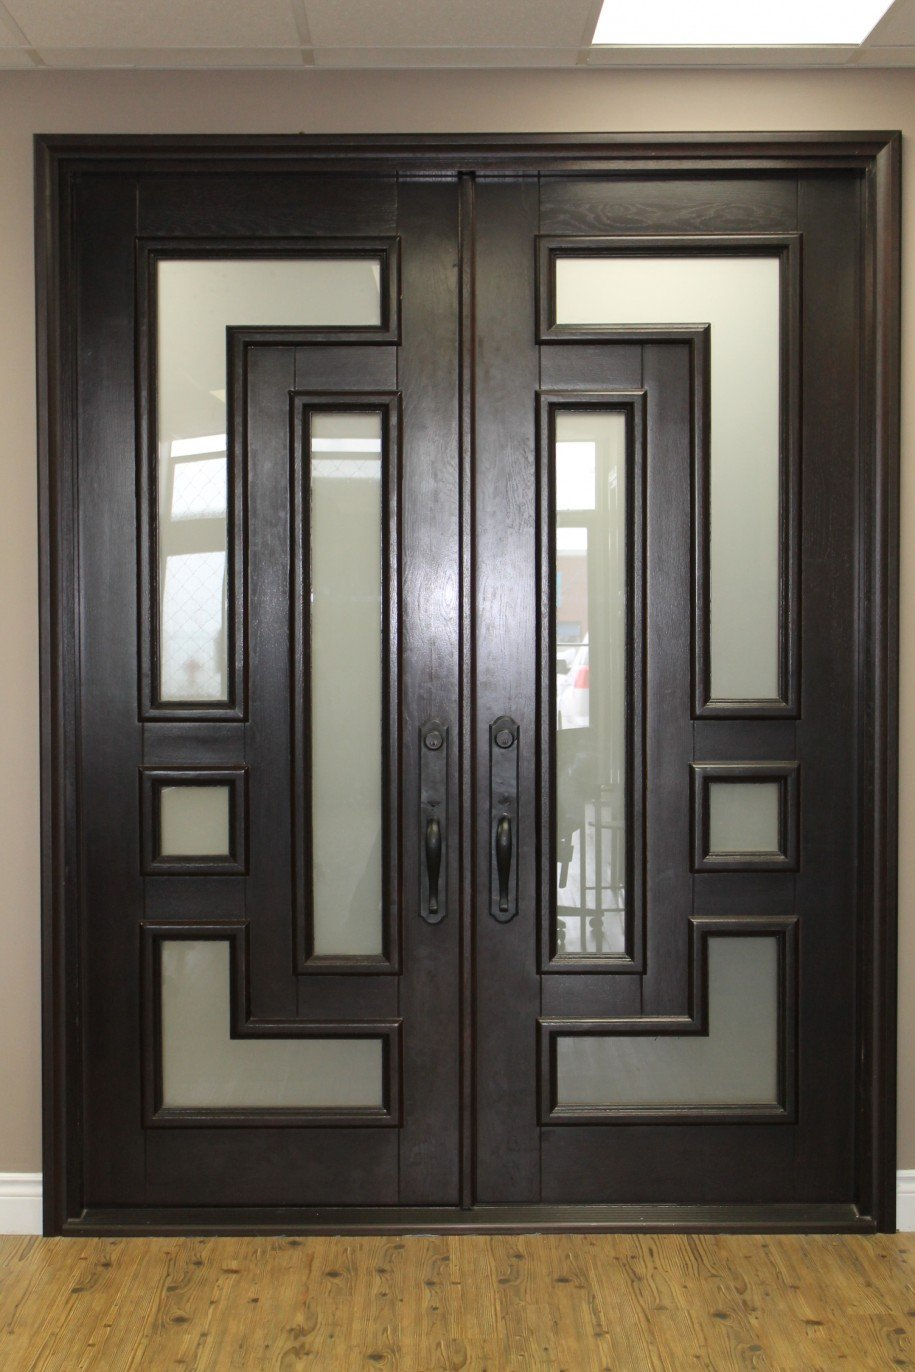 Federal 37.5x81 Flat Top Iron Door